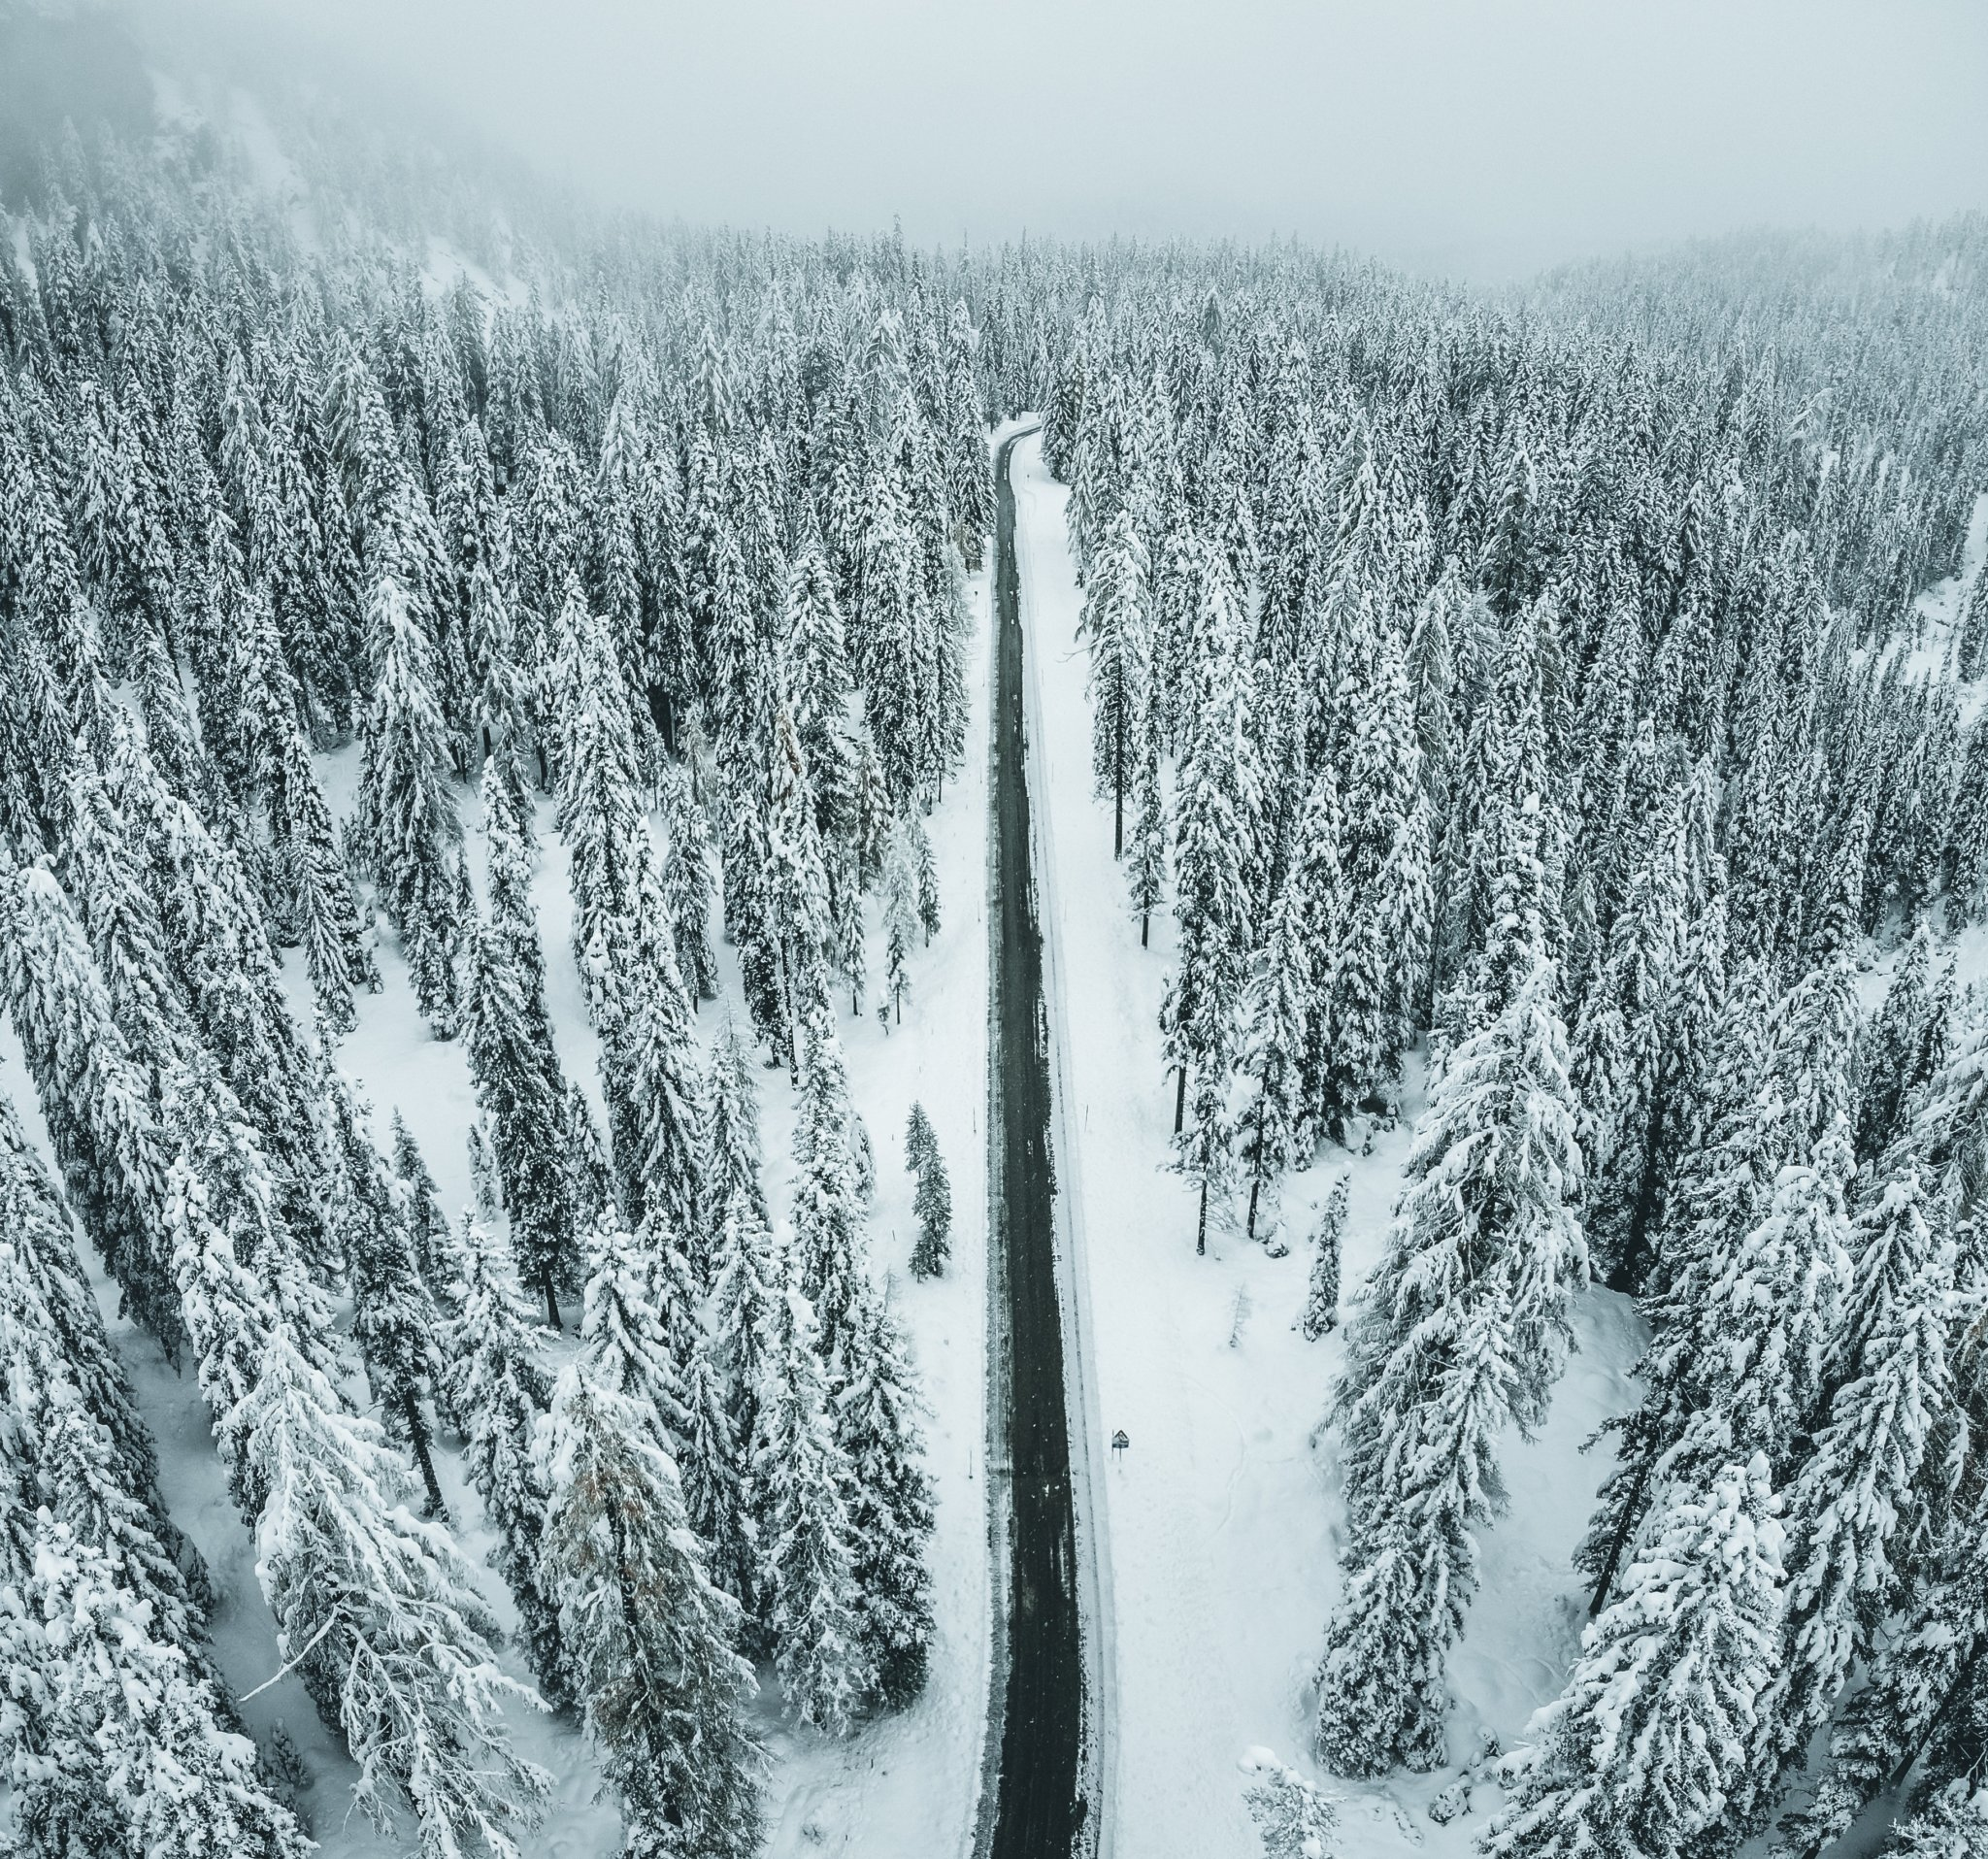 pexels photo showing a road in a snowy forest